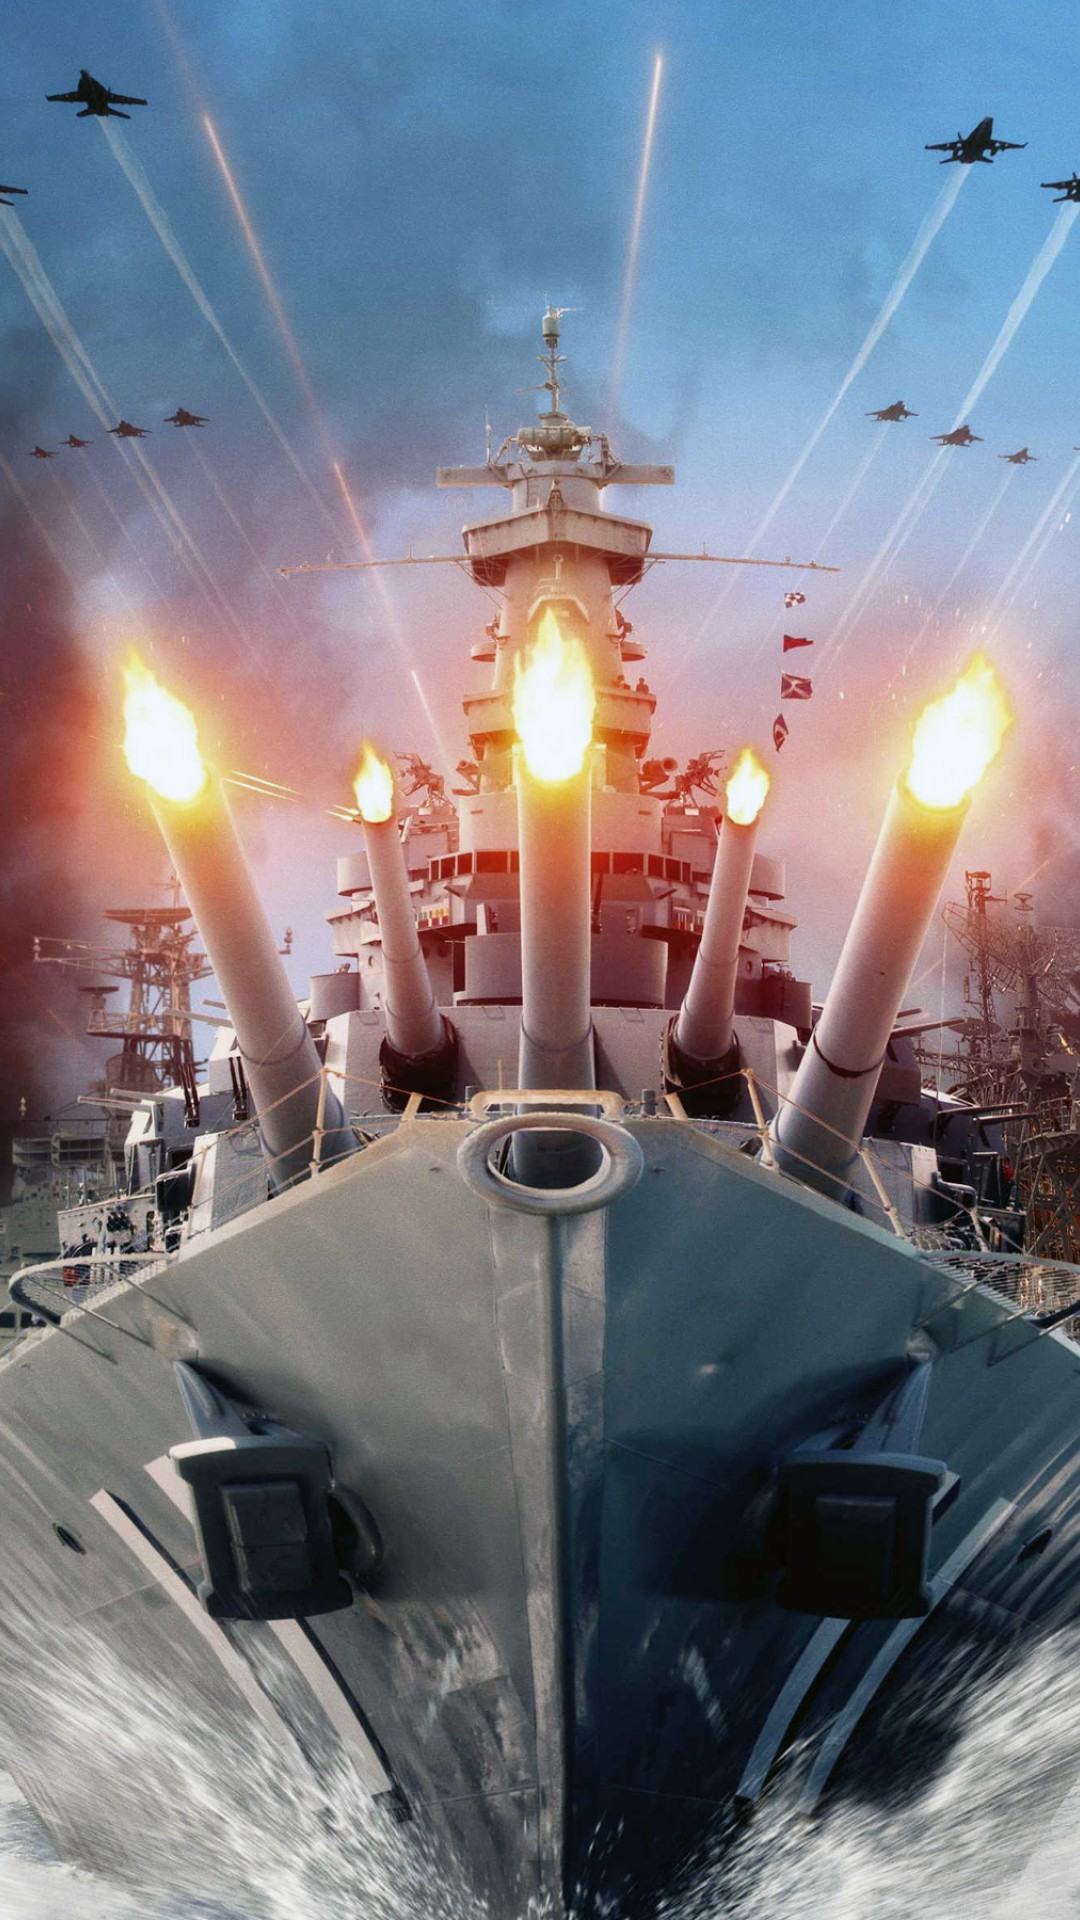 World Of Warships Hd Wallpaper For Desktop And Mobiles Iphone 6